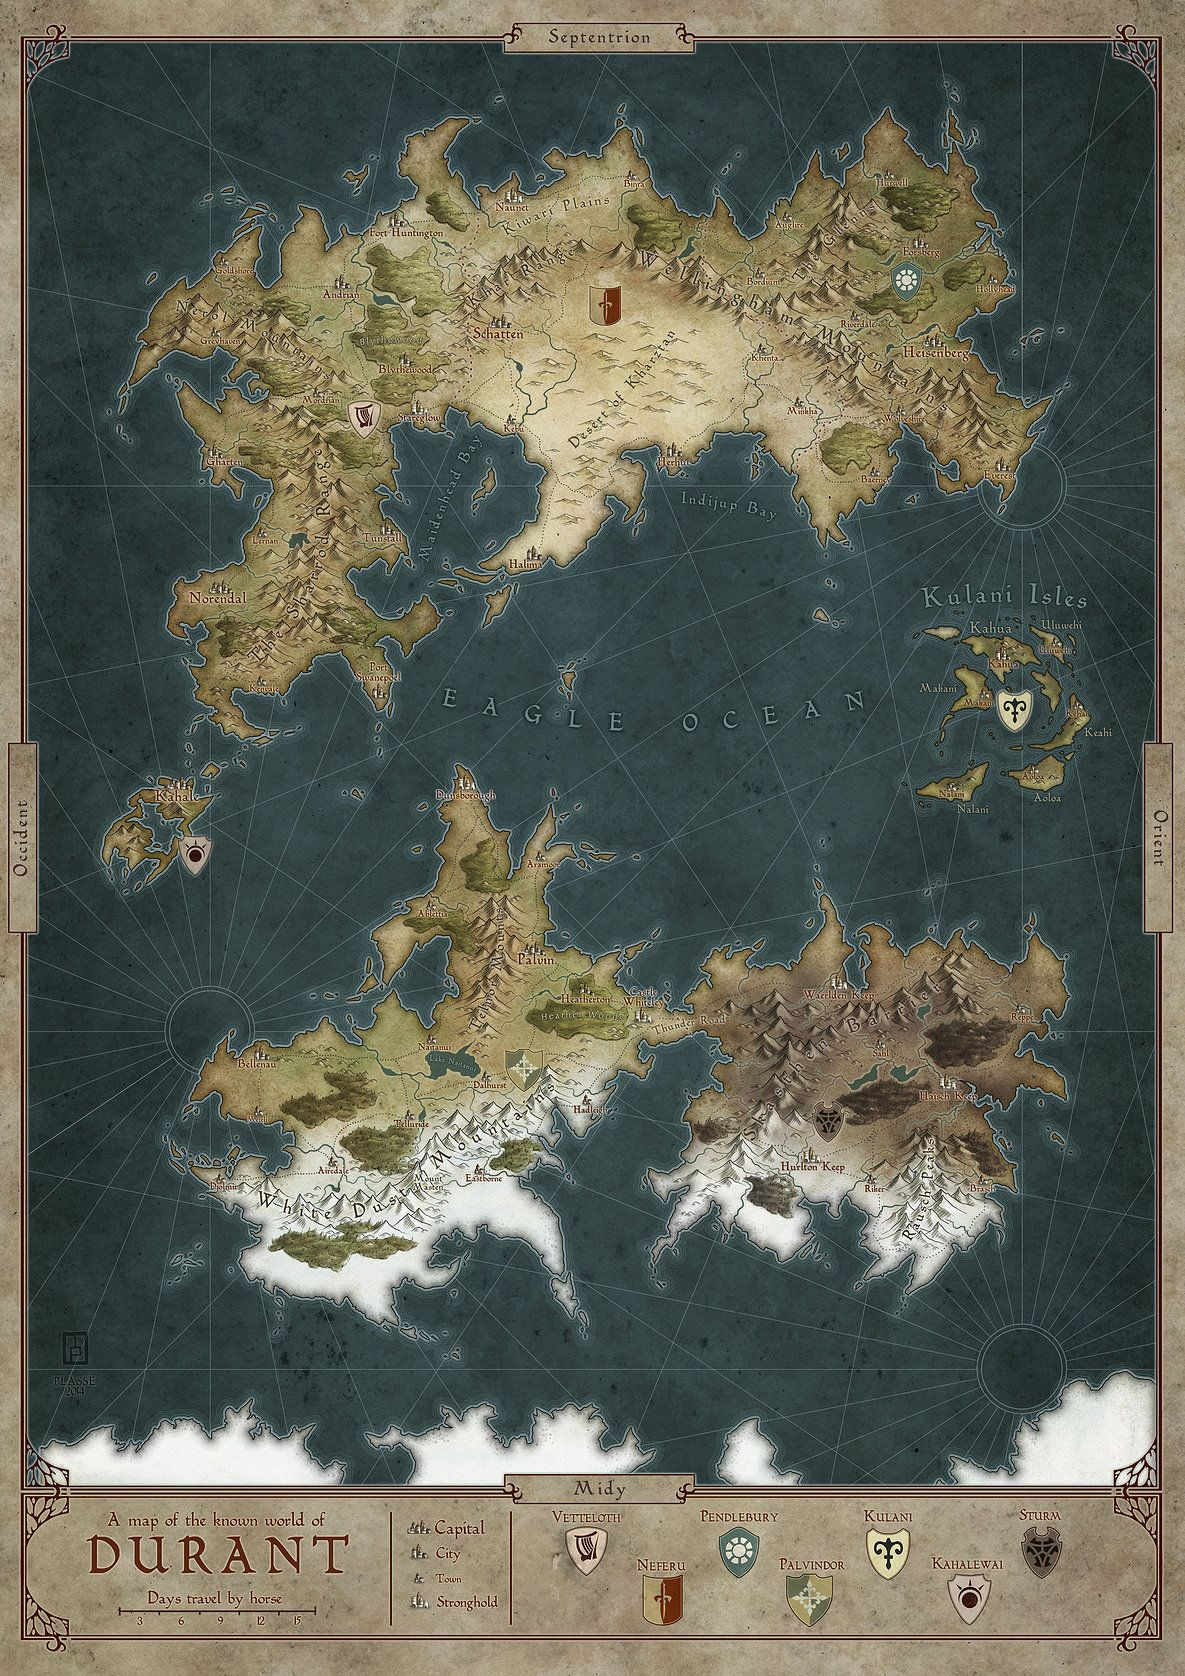 Pin by Dominique Paquin on Fantasy Maps